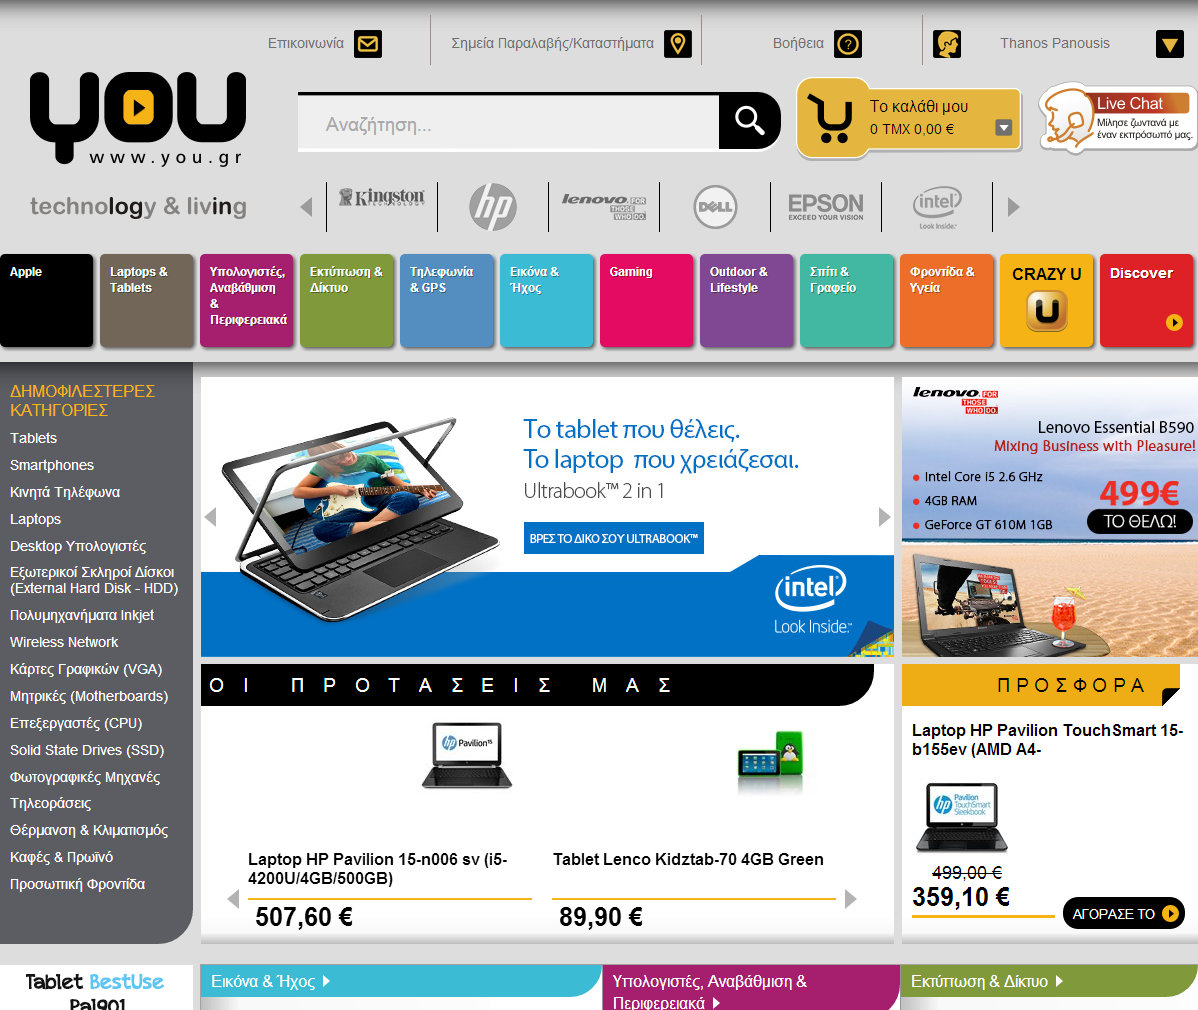 www.you.gr homepage screenshot